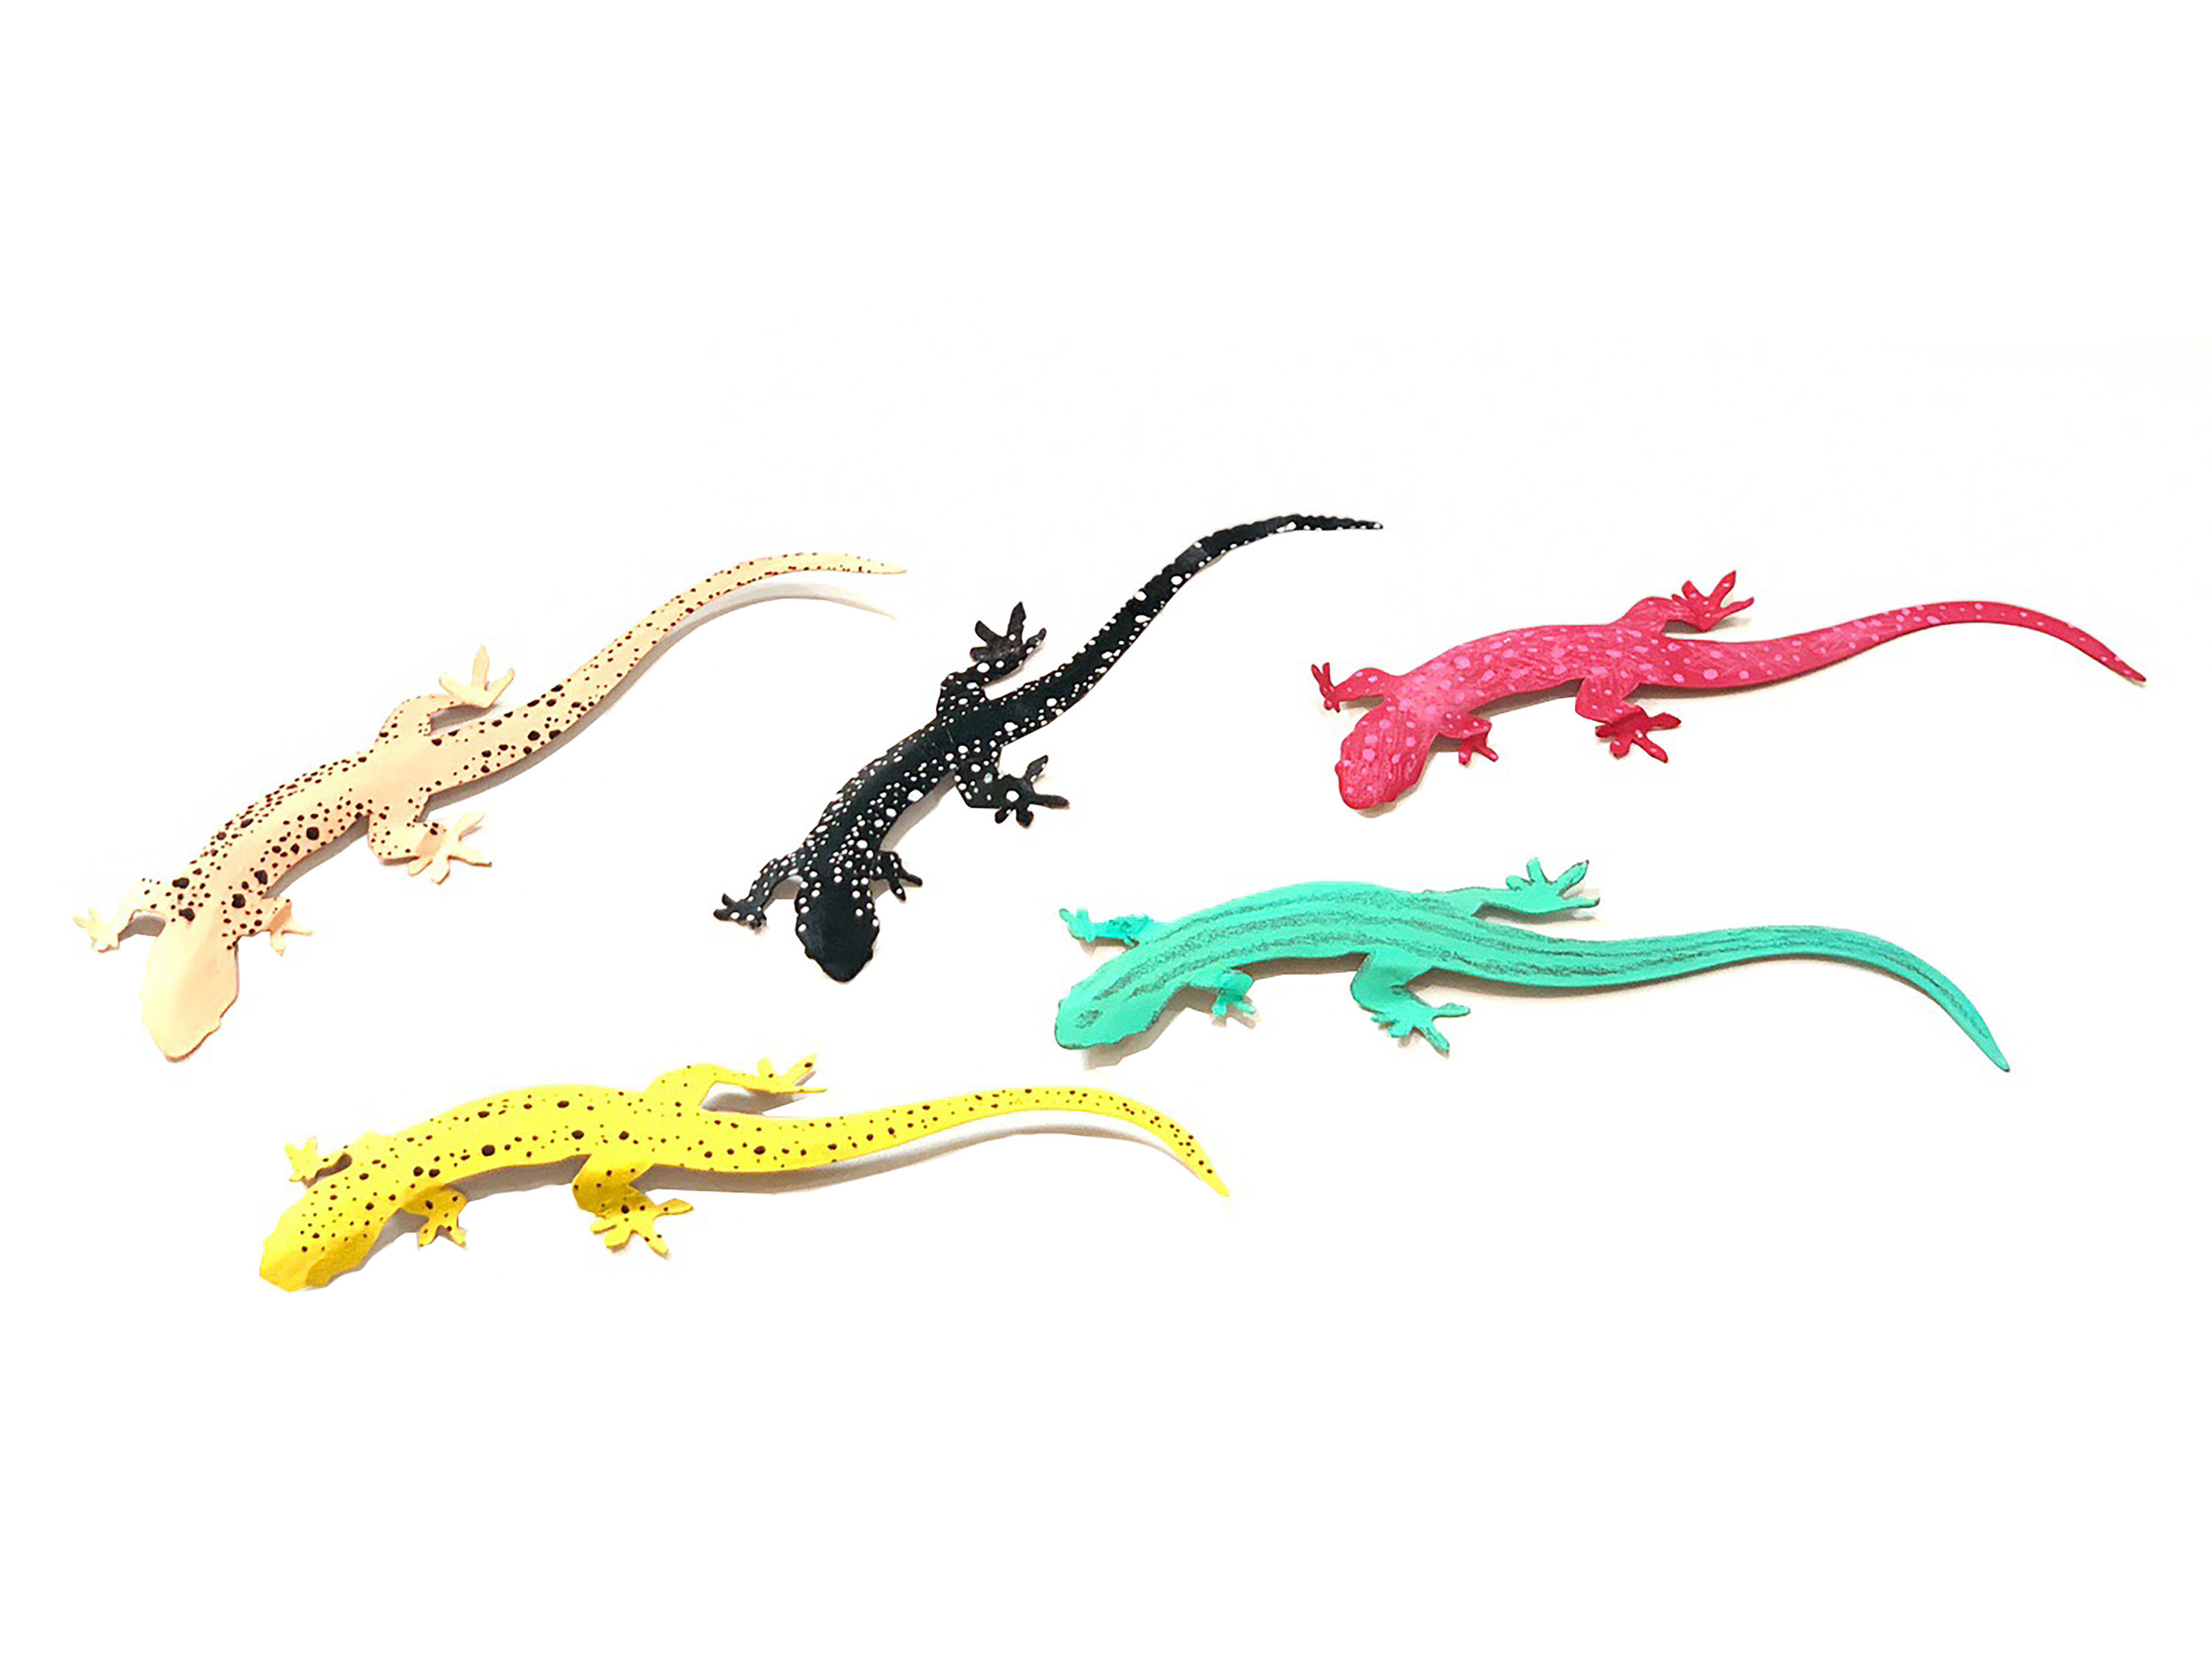 Up-Cycled Craft: Cereal Box Lizards